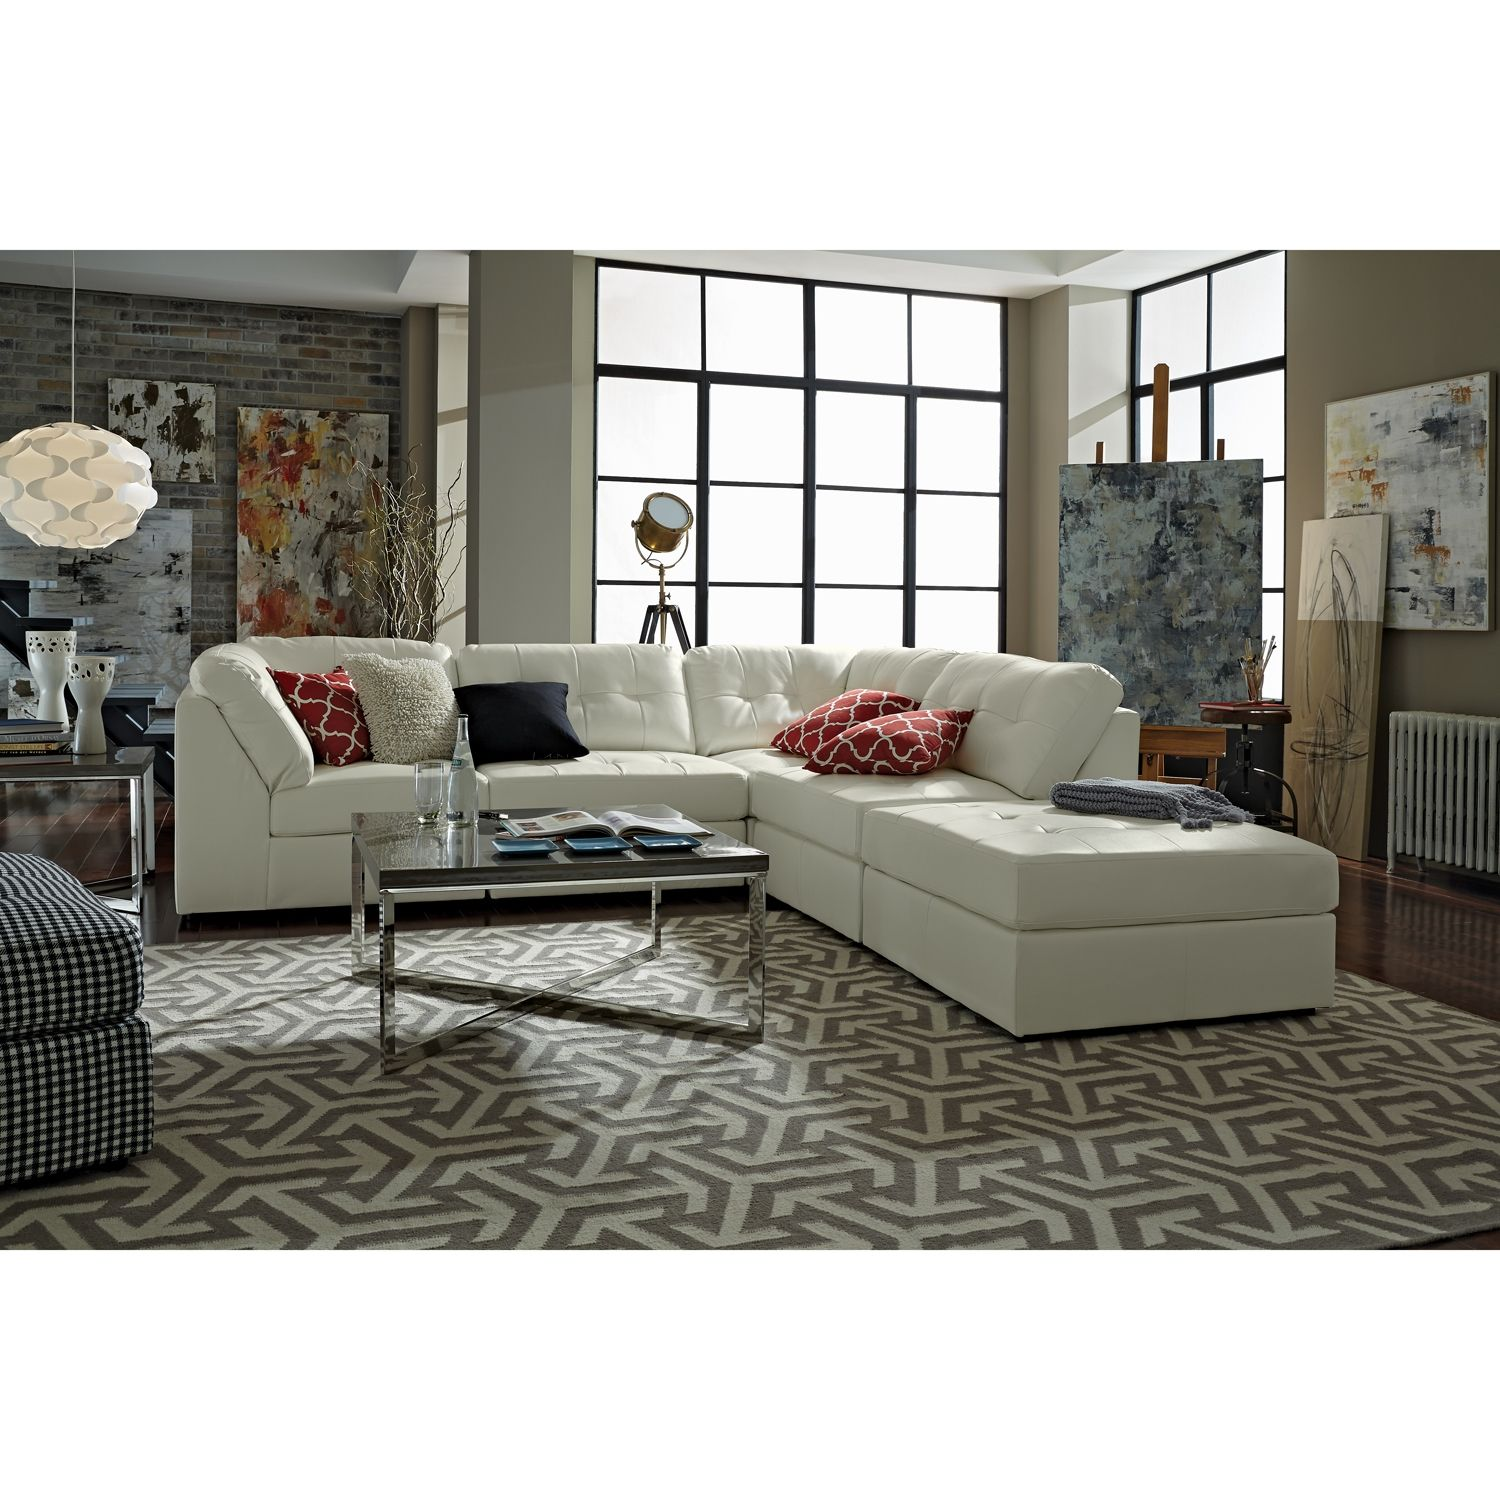 Charming Aventura II Leather 5 Pc. Sectional And Cocktail Ottoman   Value .